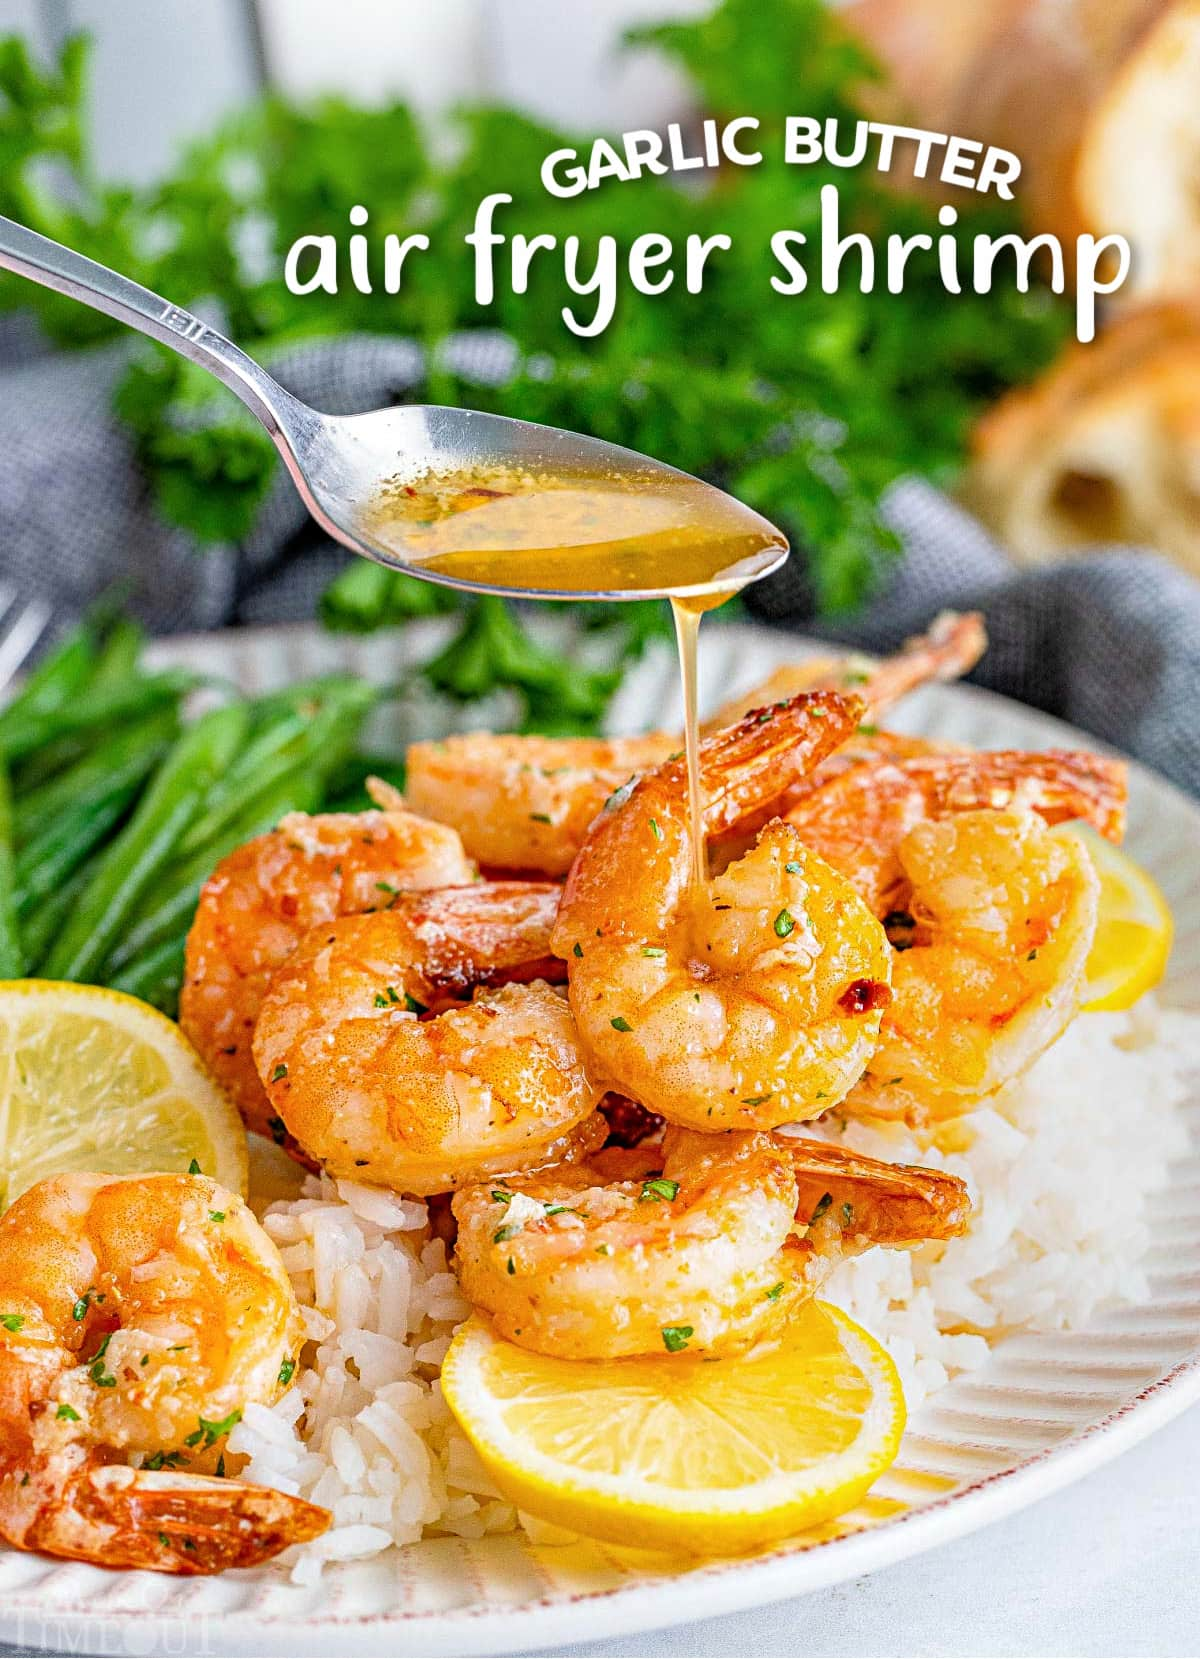 garlic her butter being drizzled on air fryer shrimp on a plate with green beans and lemon slices. title overlay at top of image.